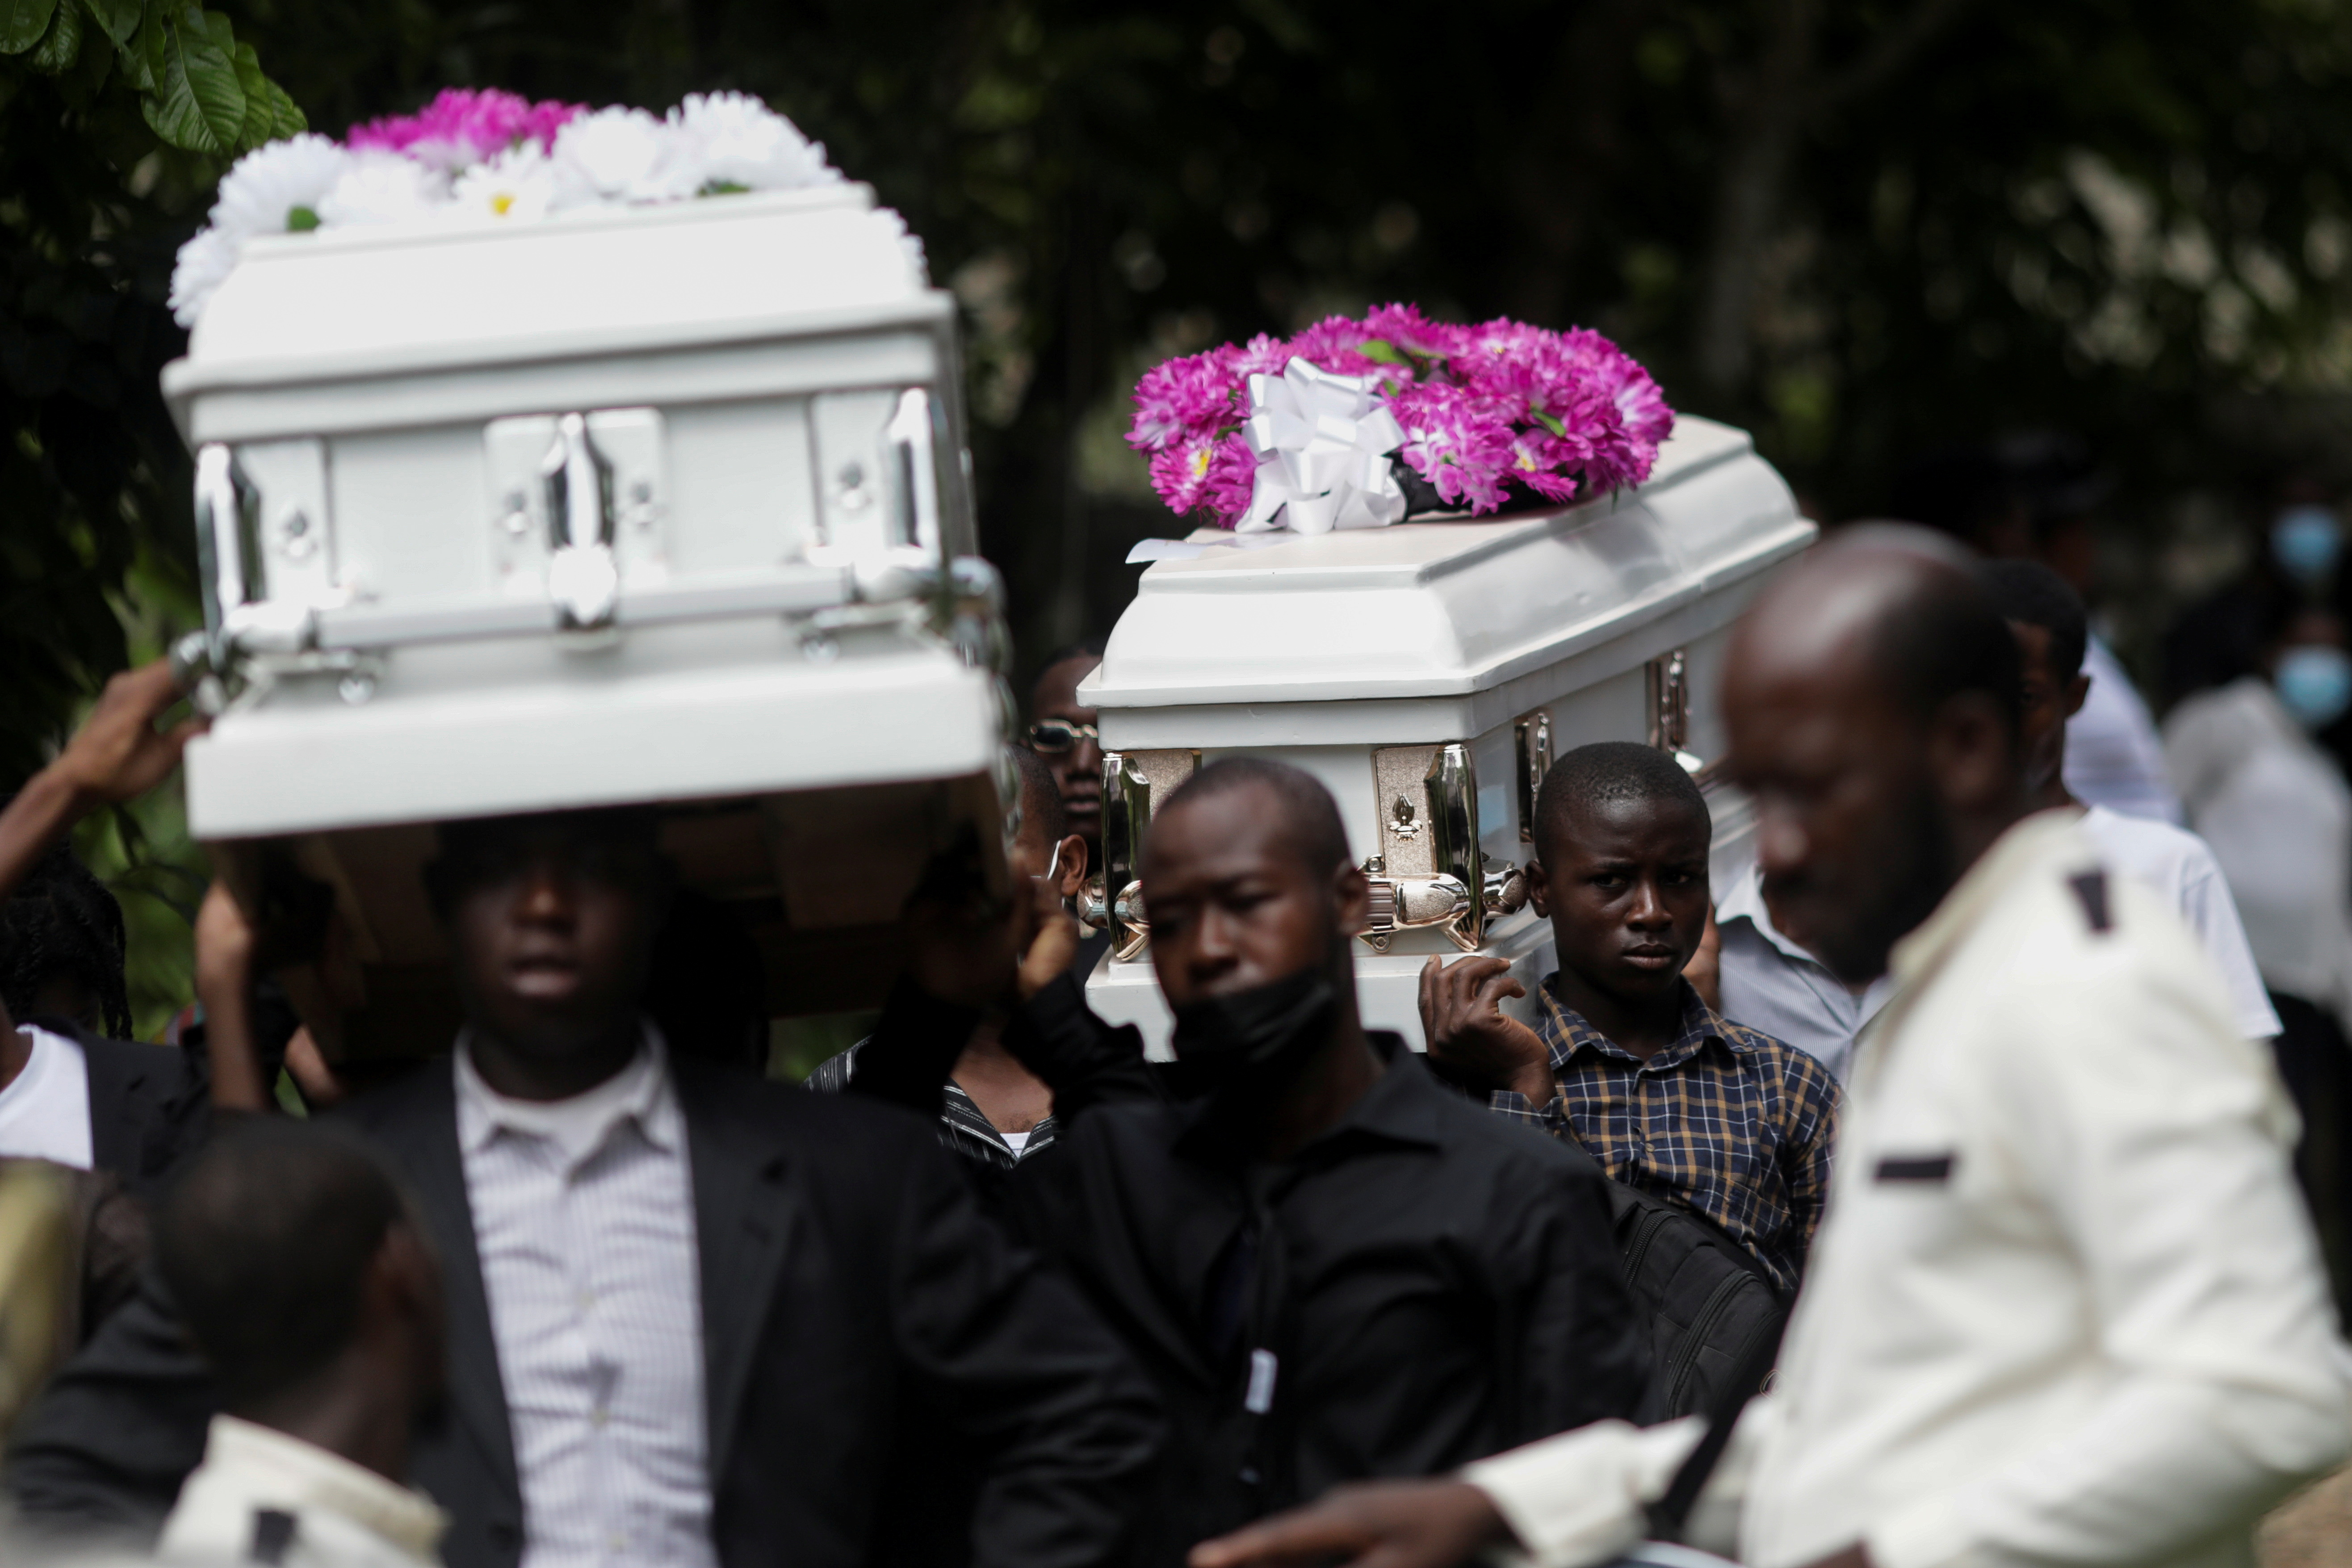 People carry coffins during the funeral of four family members after the earthquake that took place on August 14th, in Marceline near Les Cayes, Haiti August 21, 2021. REUTERS/Henry Romero